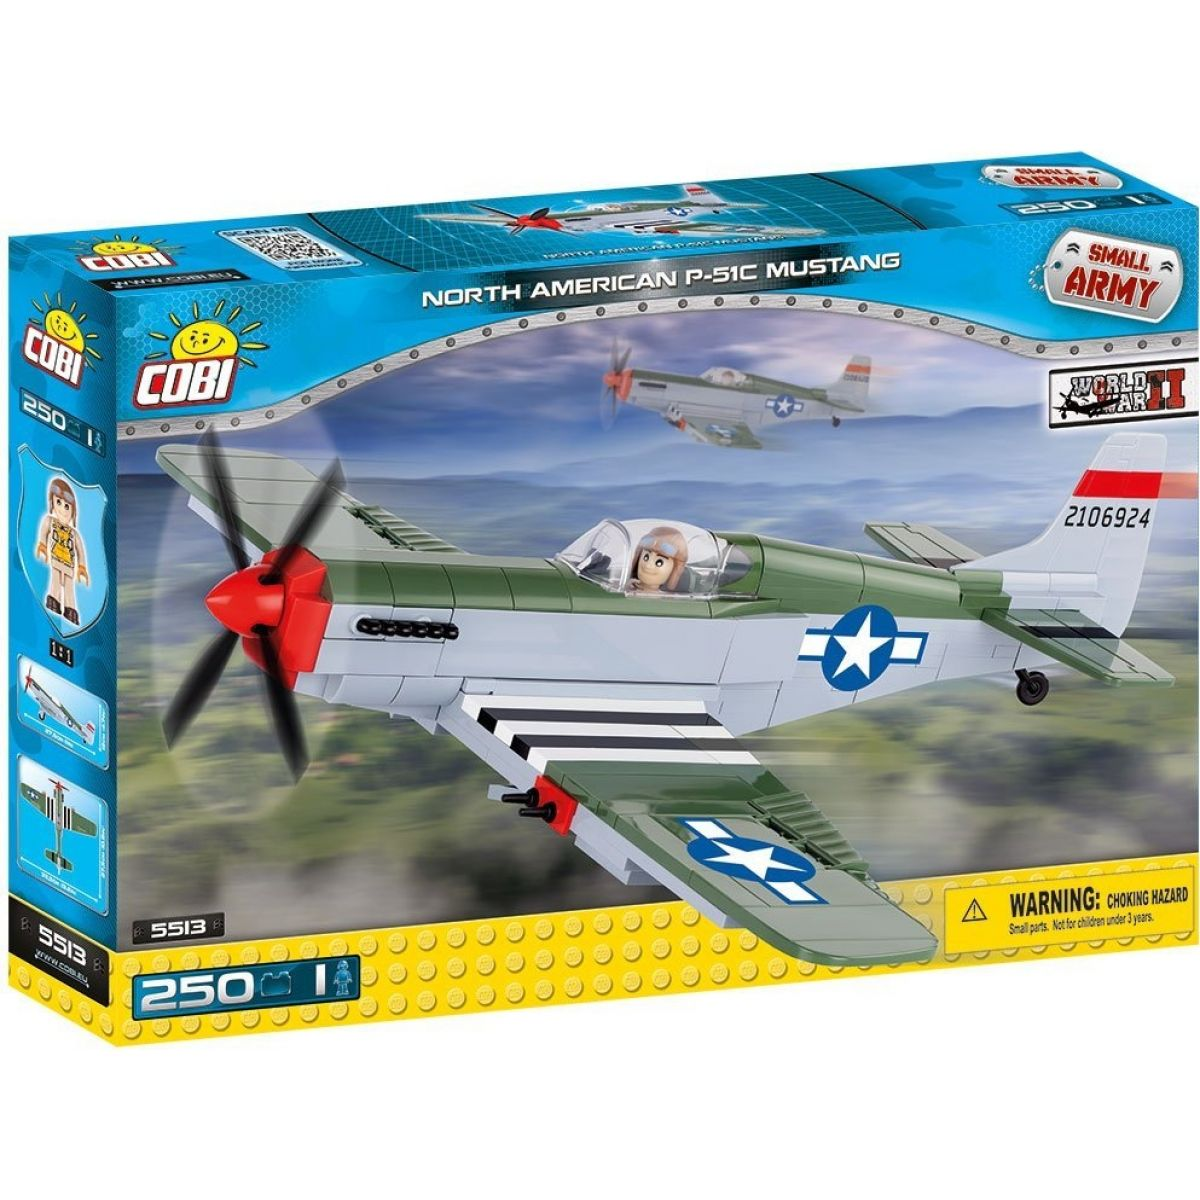 COBI 5513 SMALL ARMY North American P-51C Mustang 250 k